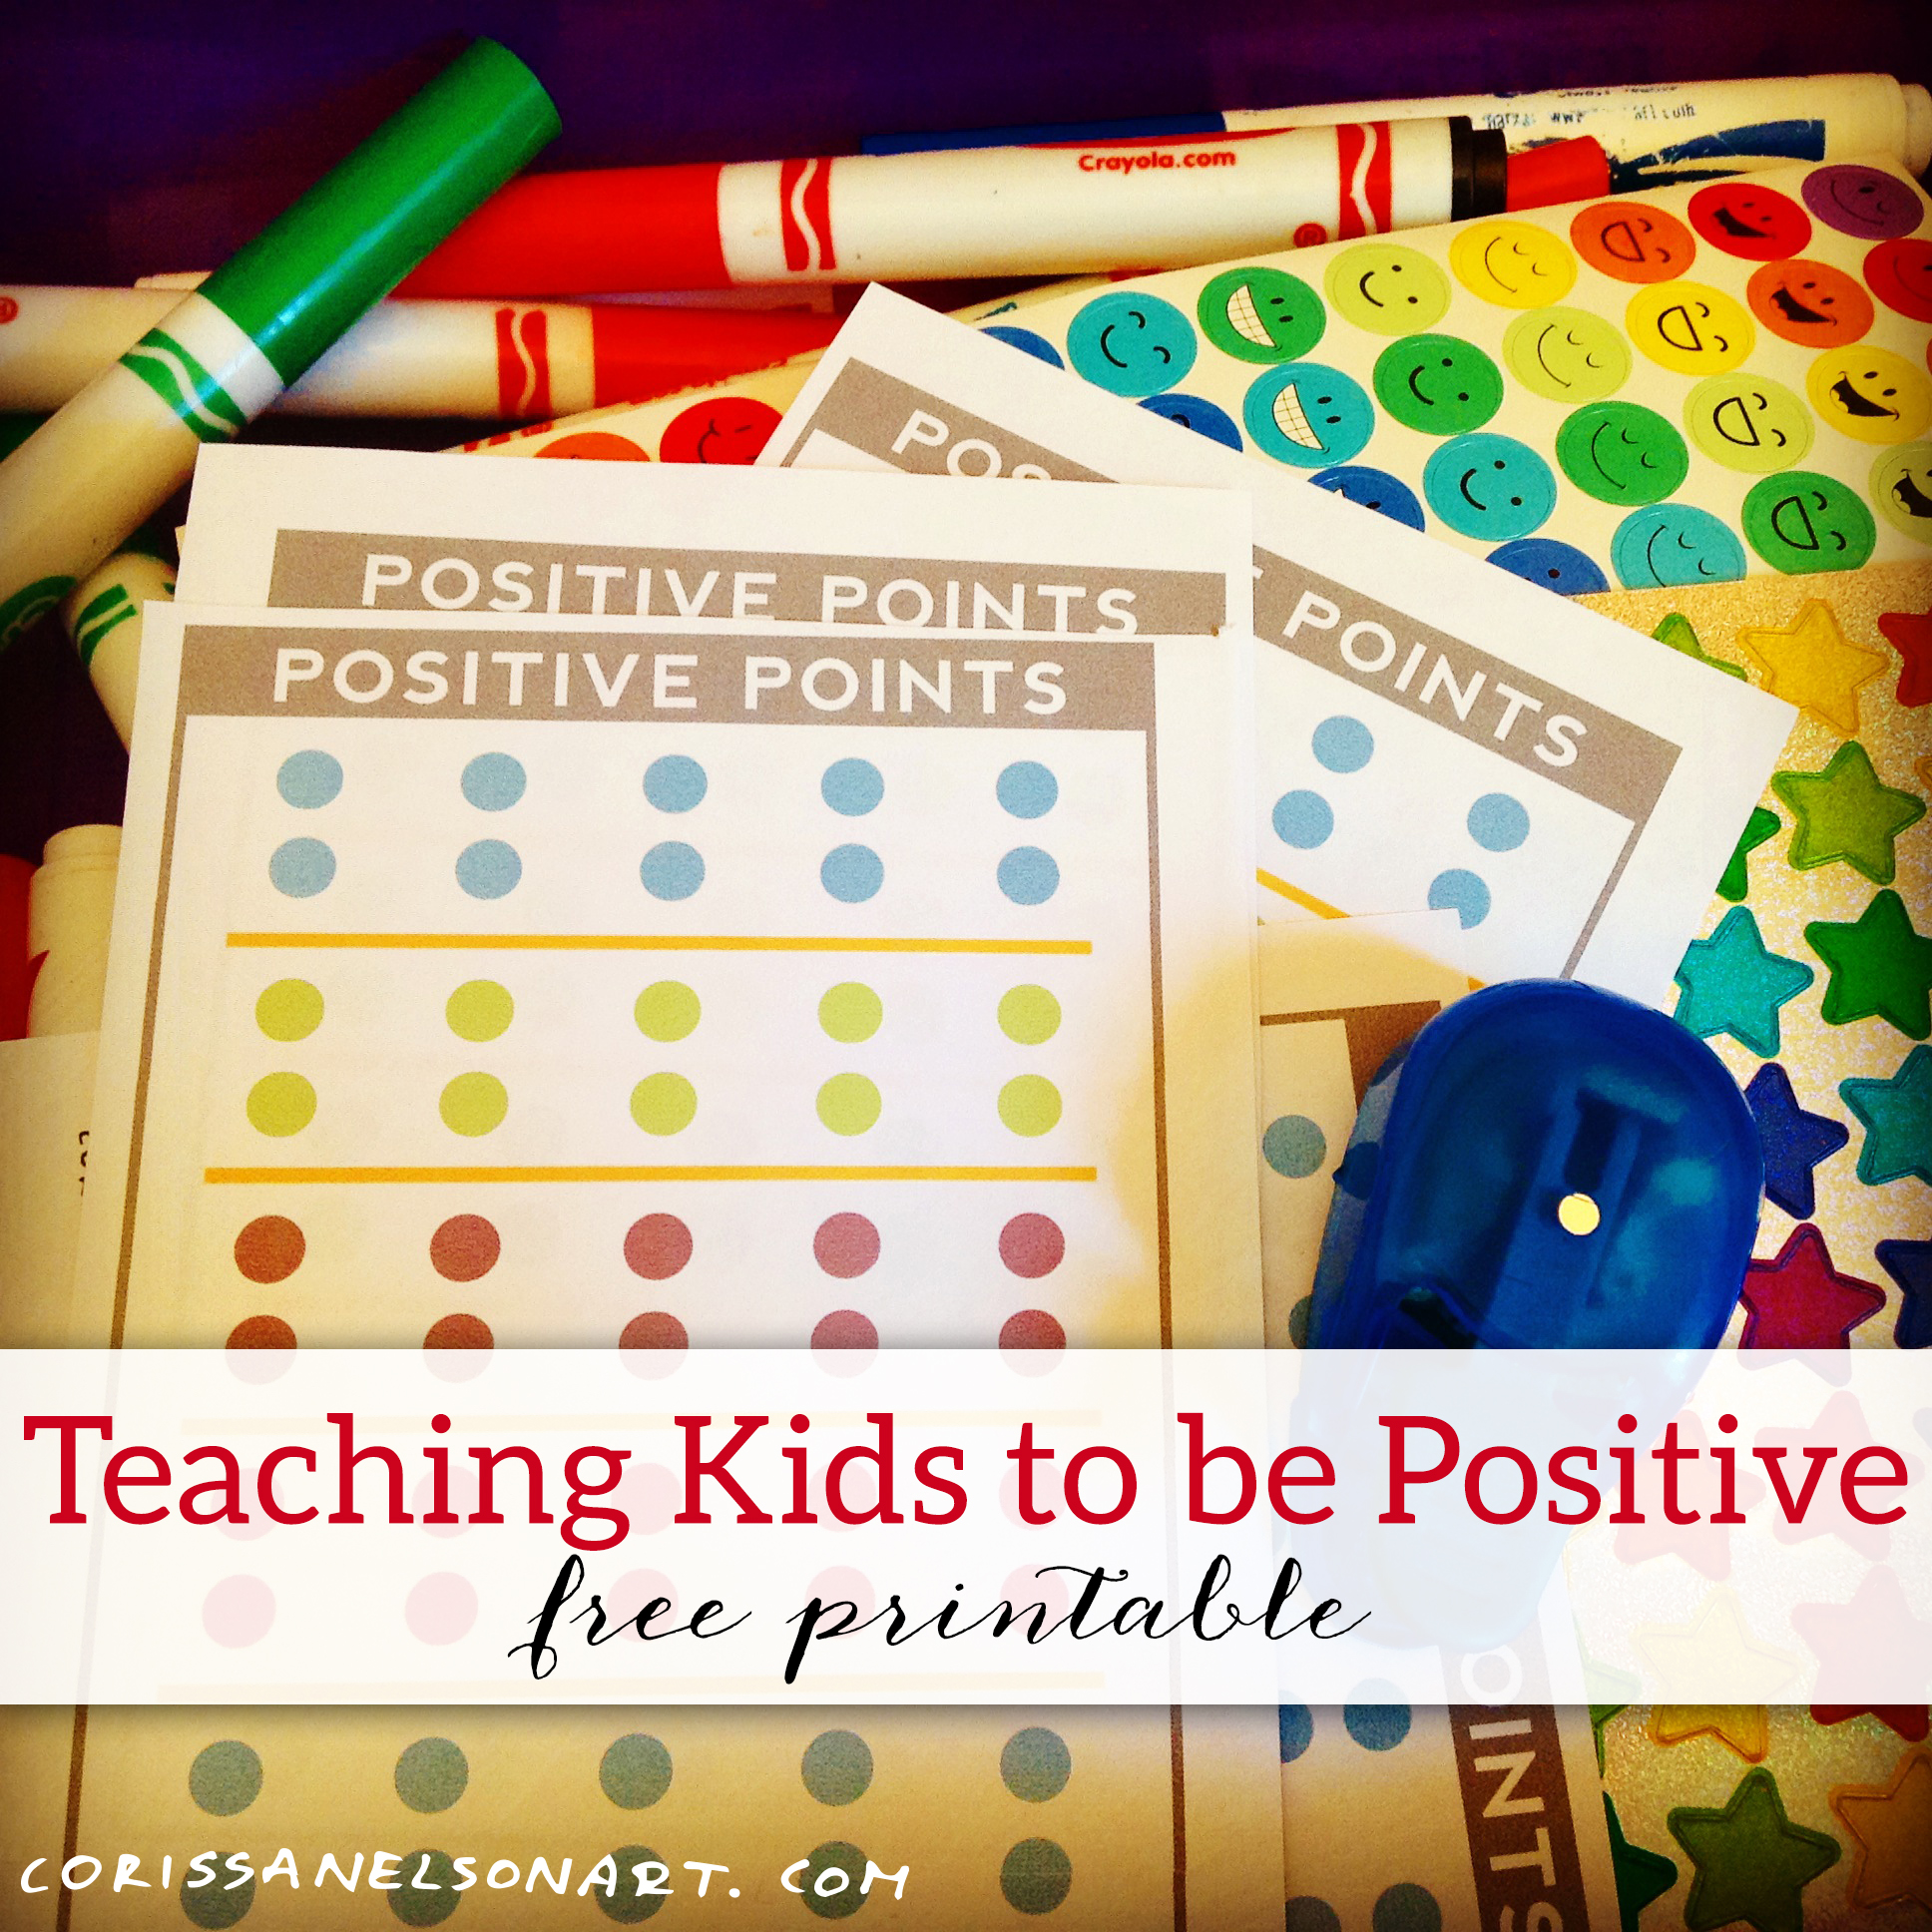 Download the   free positive points printable here.